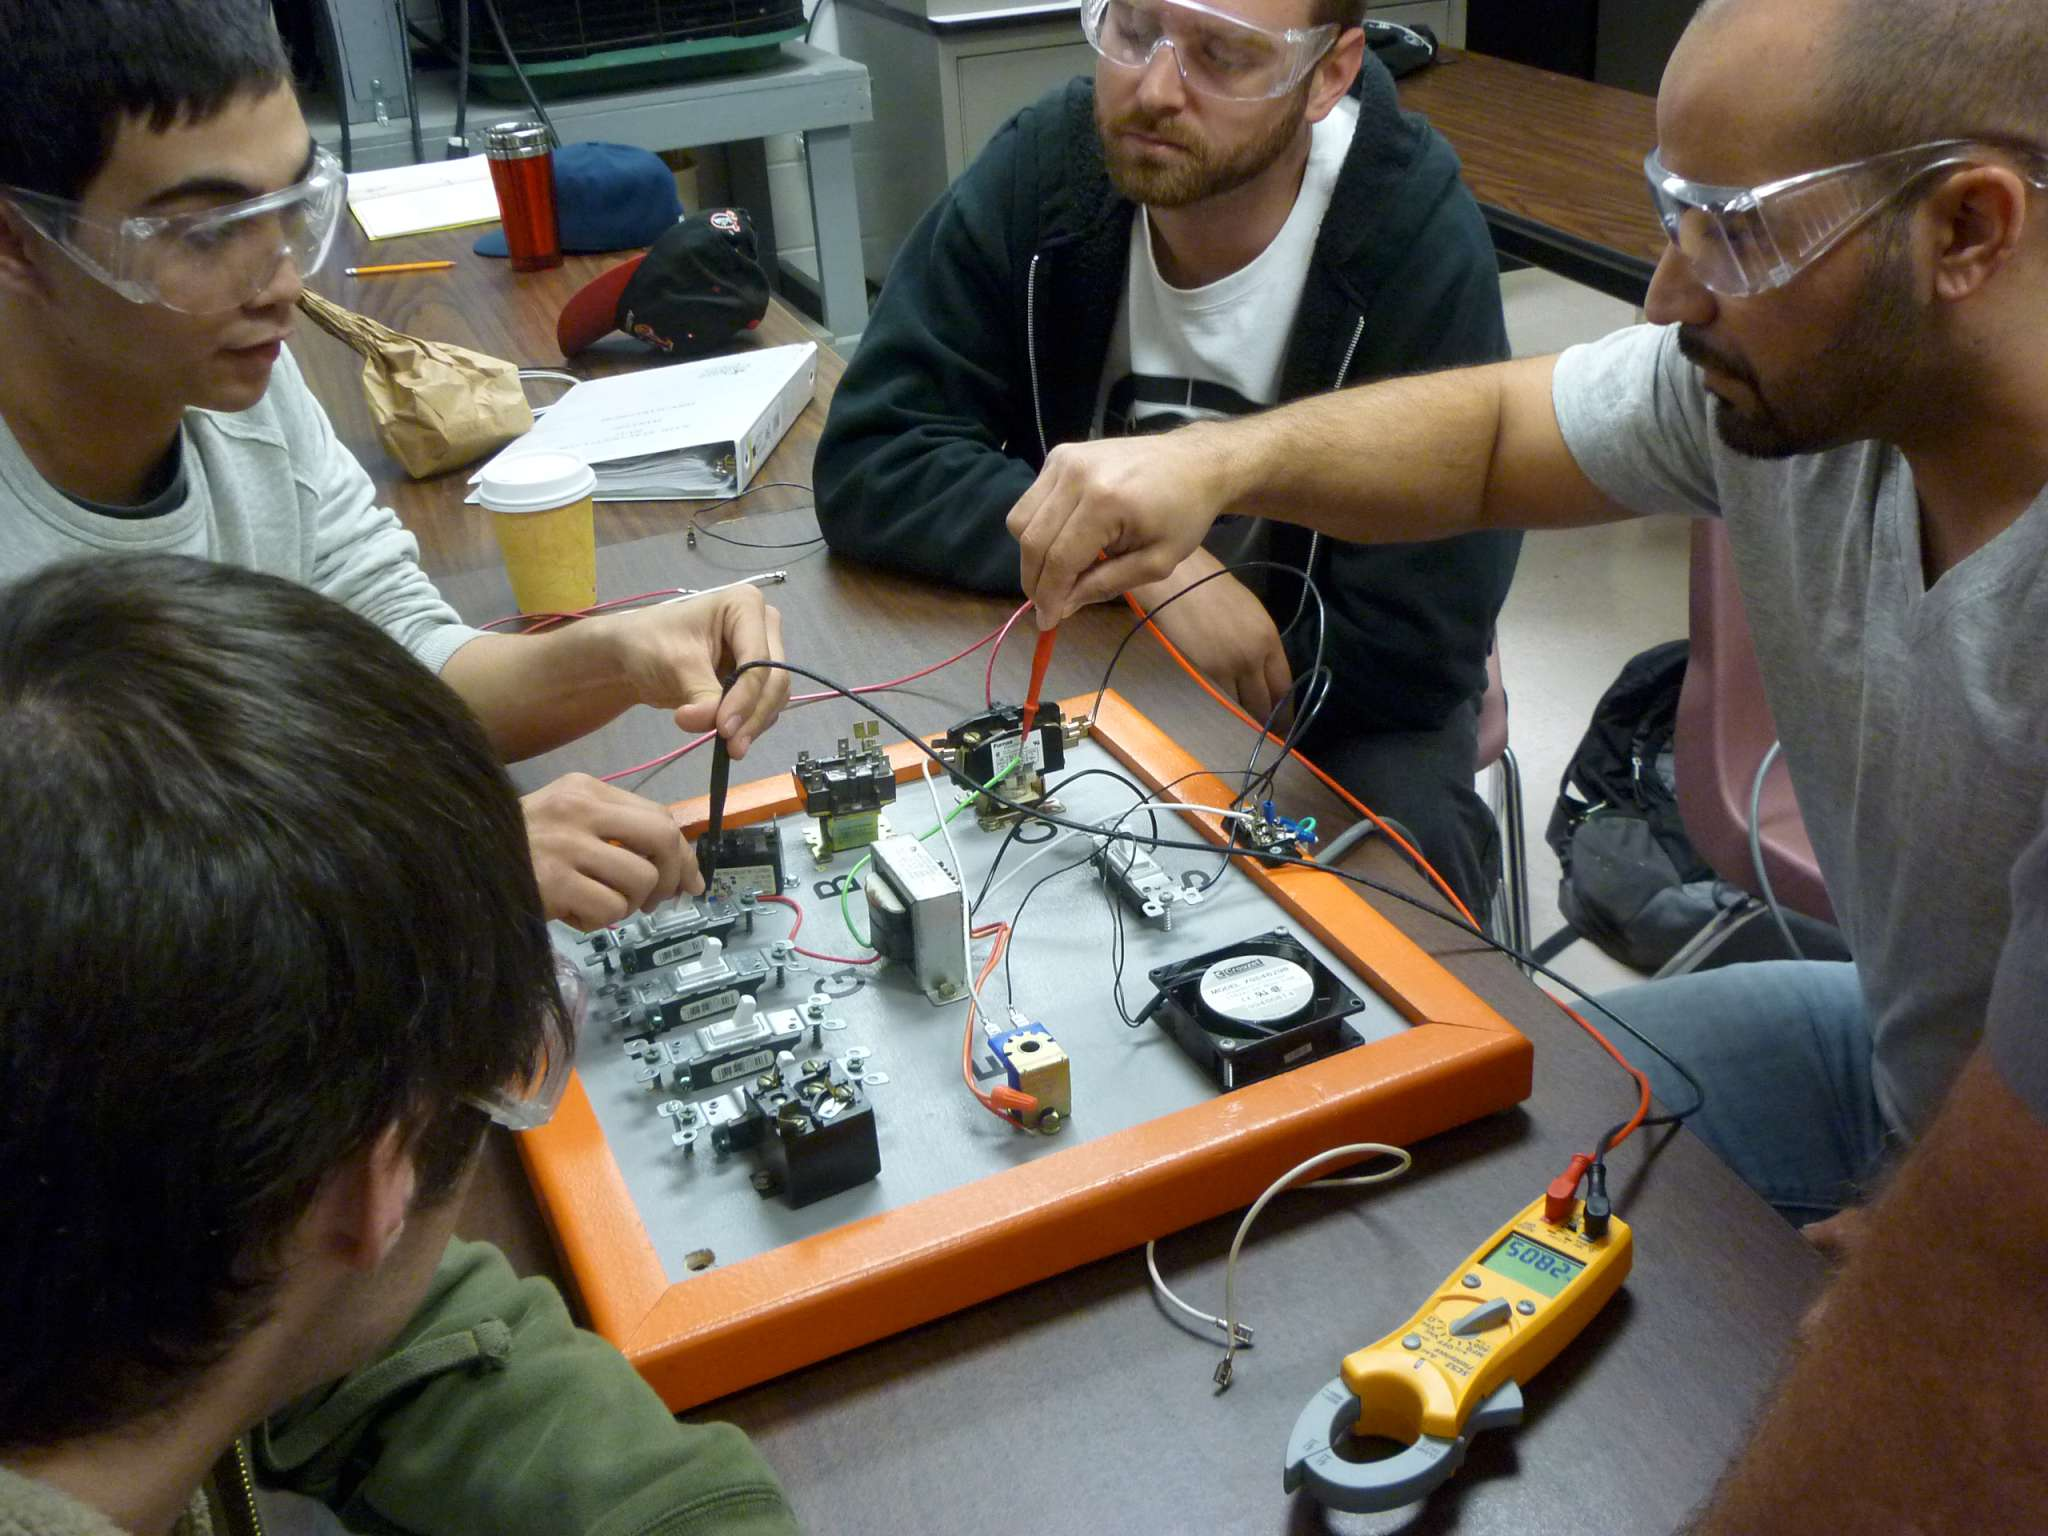 4 students taking various measurements on a circuit board